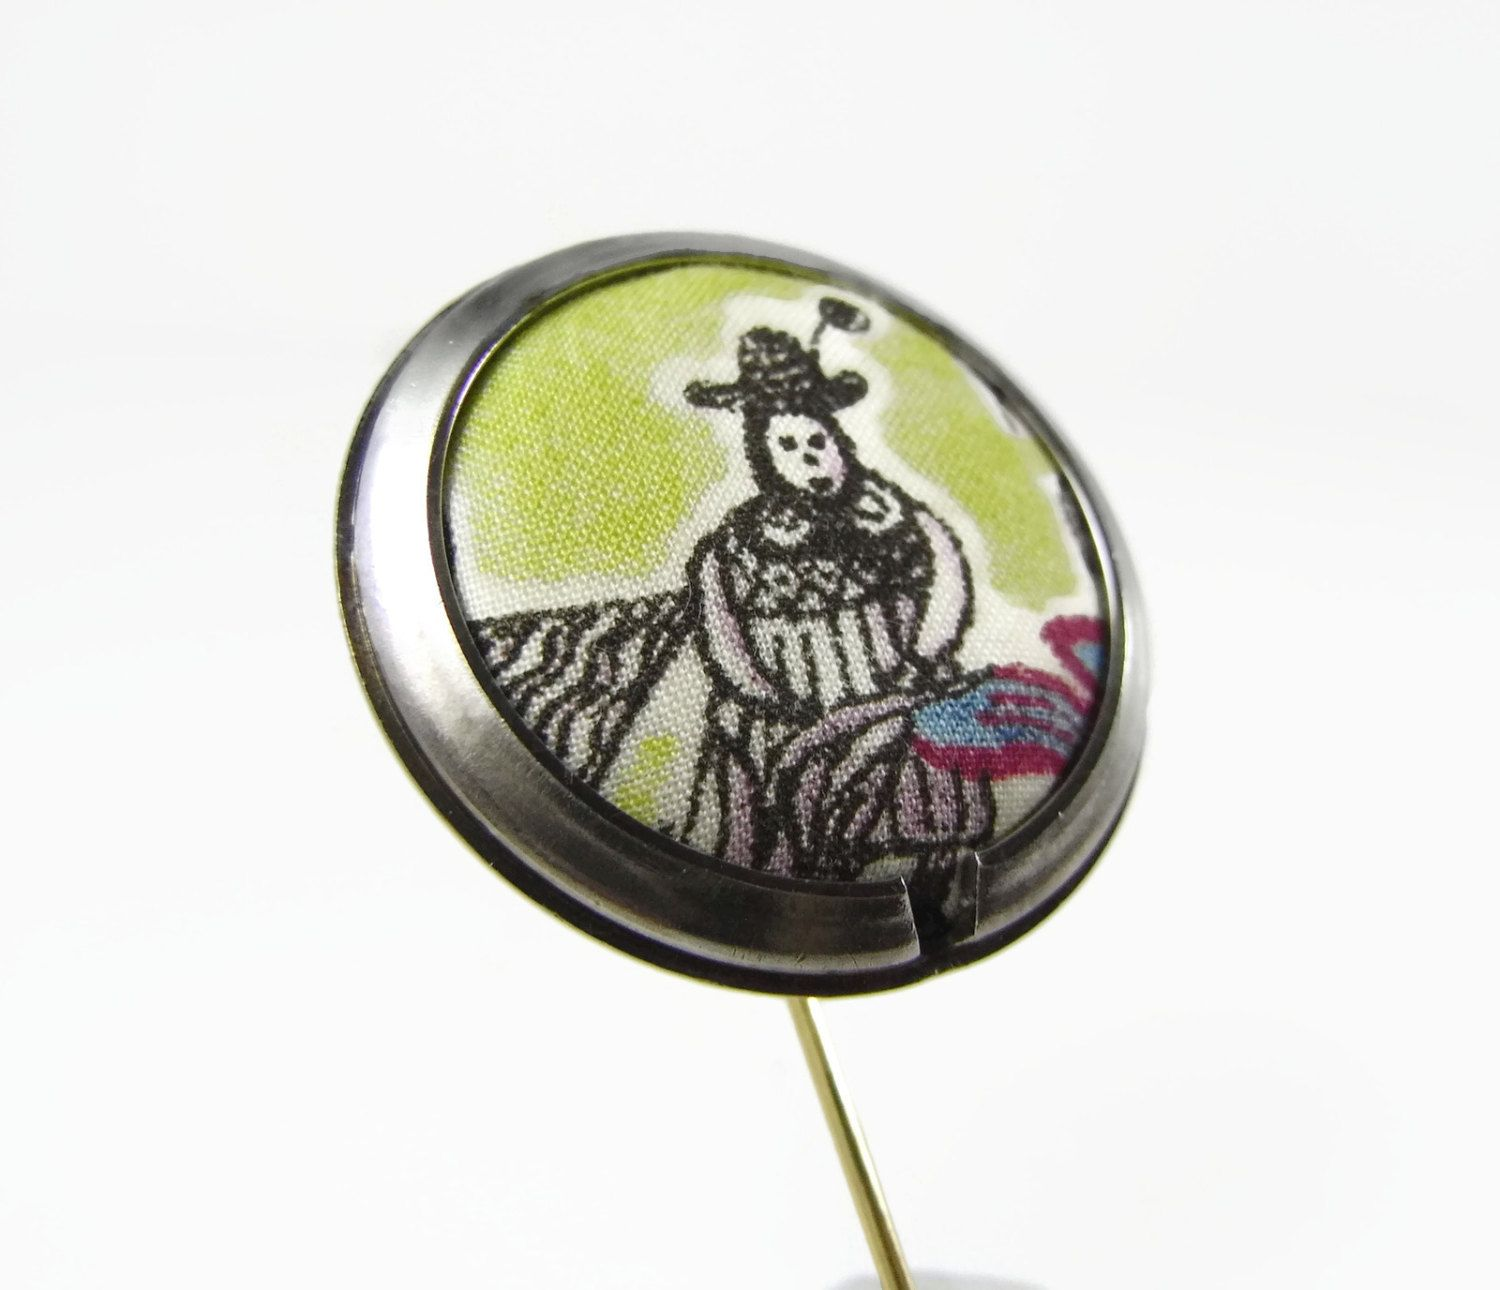 "The Farmer: Liberty of London Grayson Perry ""Flo"" fabric & unique upcycled watch tie lapel or hat pin by ohyouhandsomedevil on Etsy"